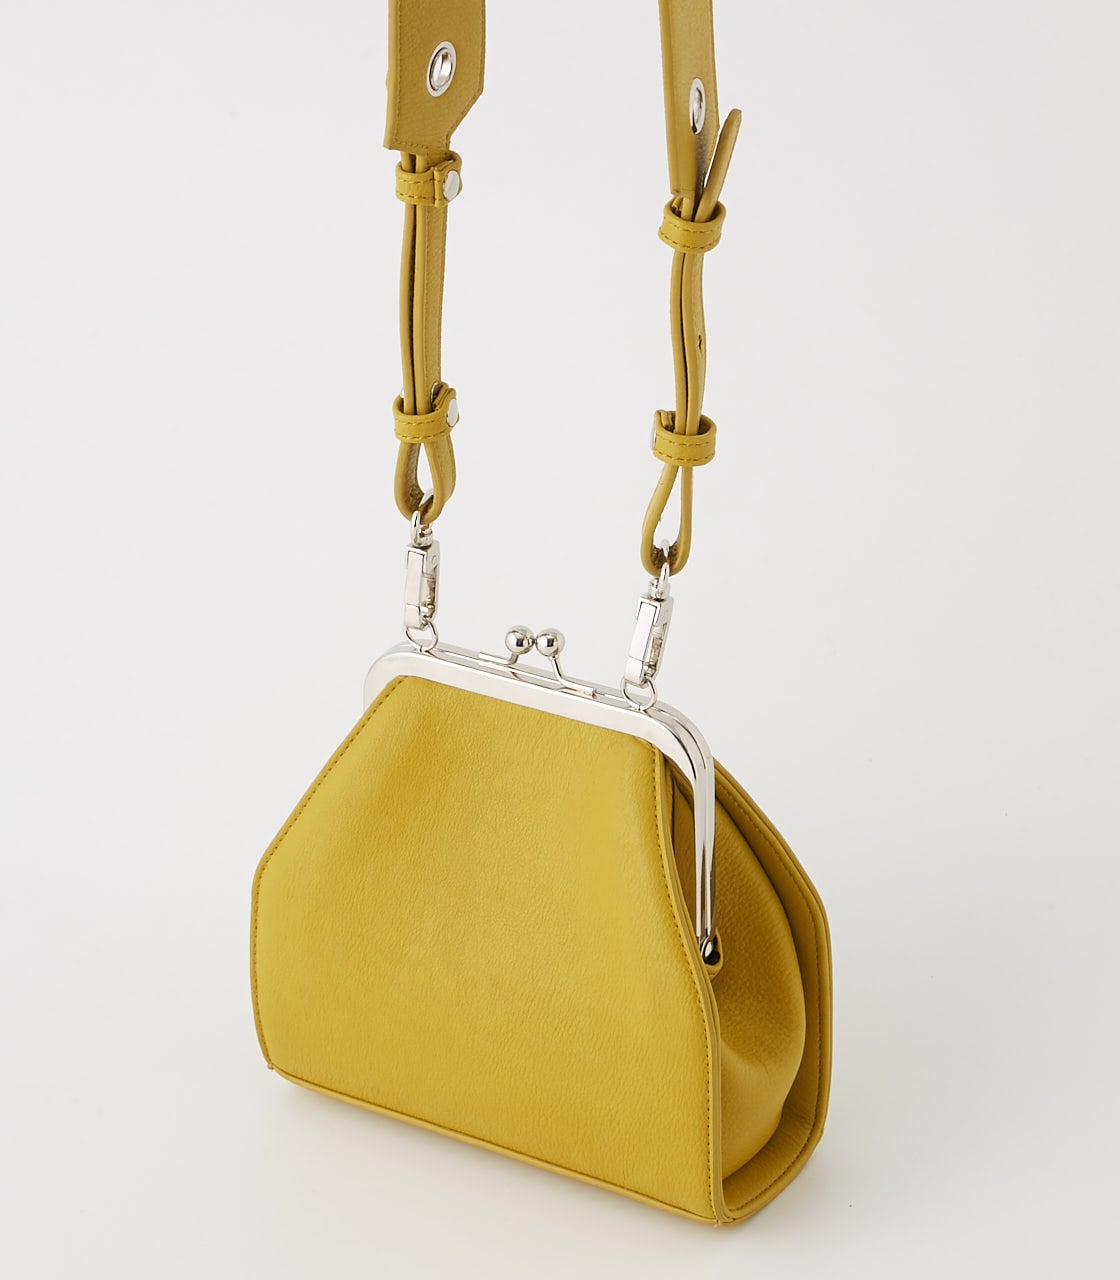 【AZUL BY MOUSSY】PESE PURSE SHOULDER BAG 【MOOK49掲載 90055】 詳細画像 YEL 3